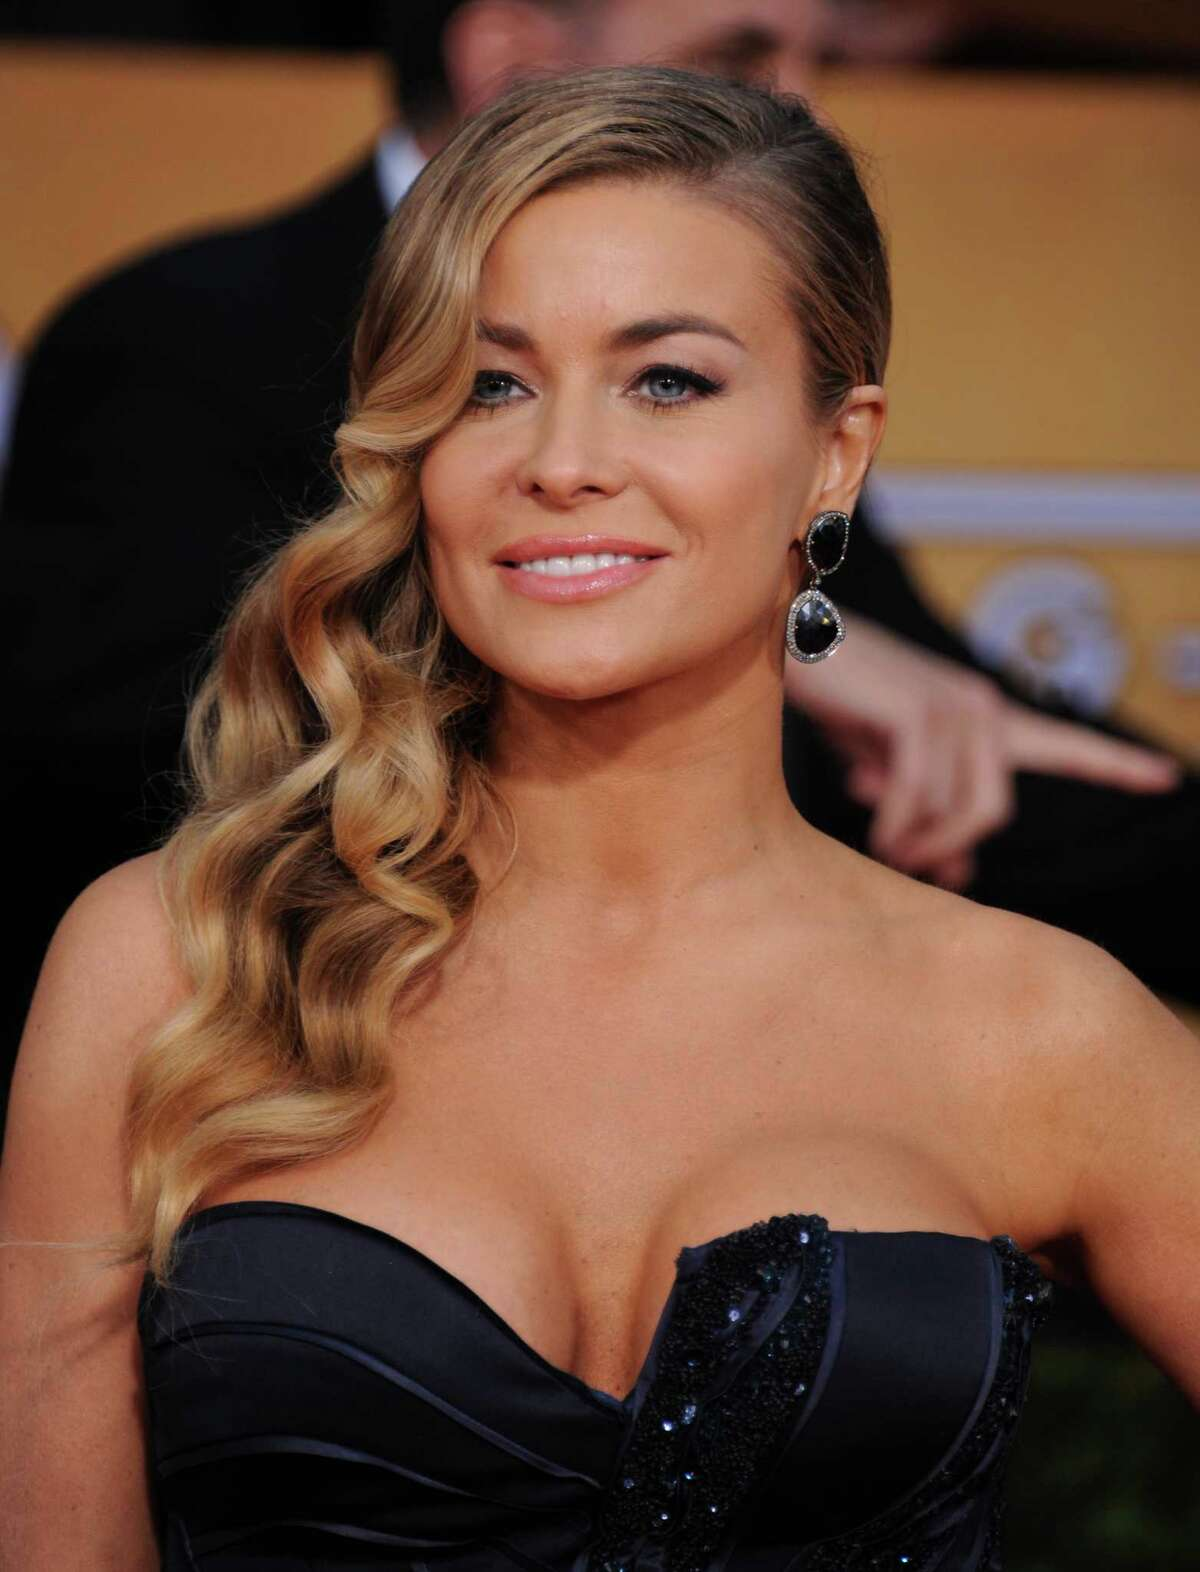 Carmen Electra arrives at the 19th Annual Screen Actors Guild Awards at the Shrine Auditorium in Los Angeles on Sunday, Jan. 27, 2013. (Photo by Jordan Strauss/Invision/AP)